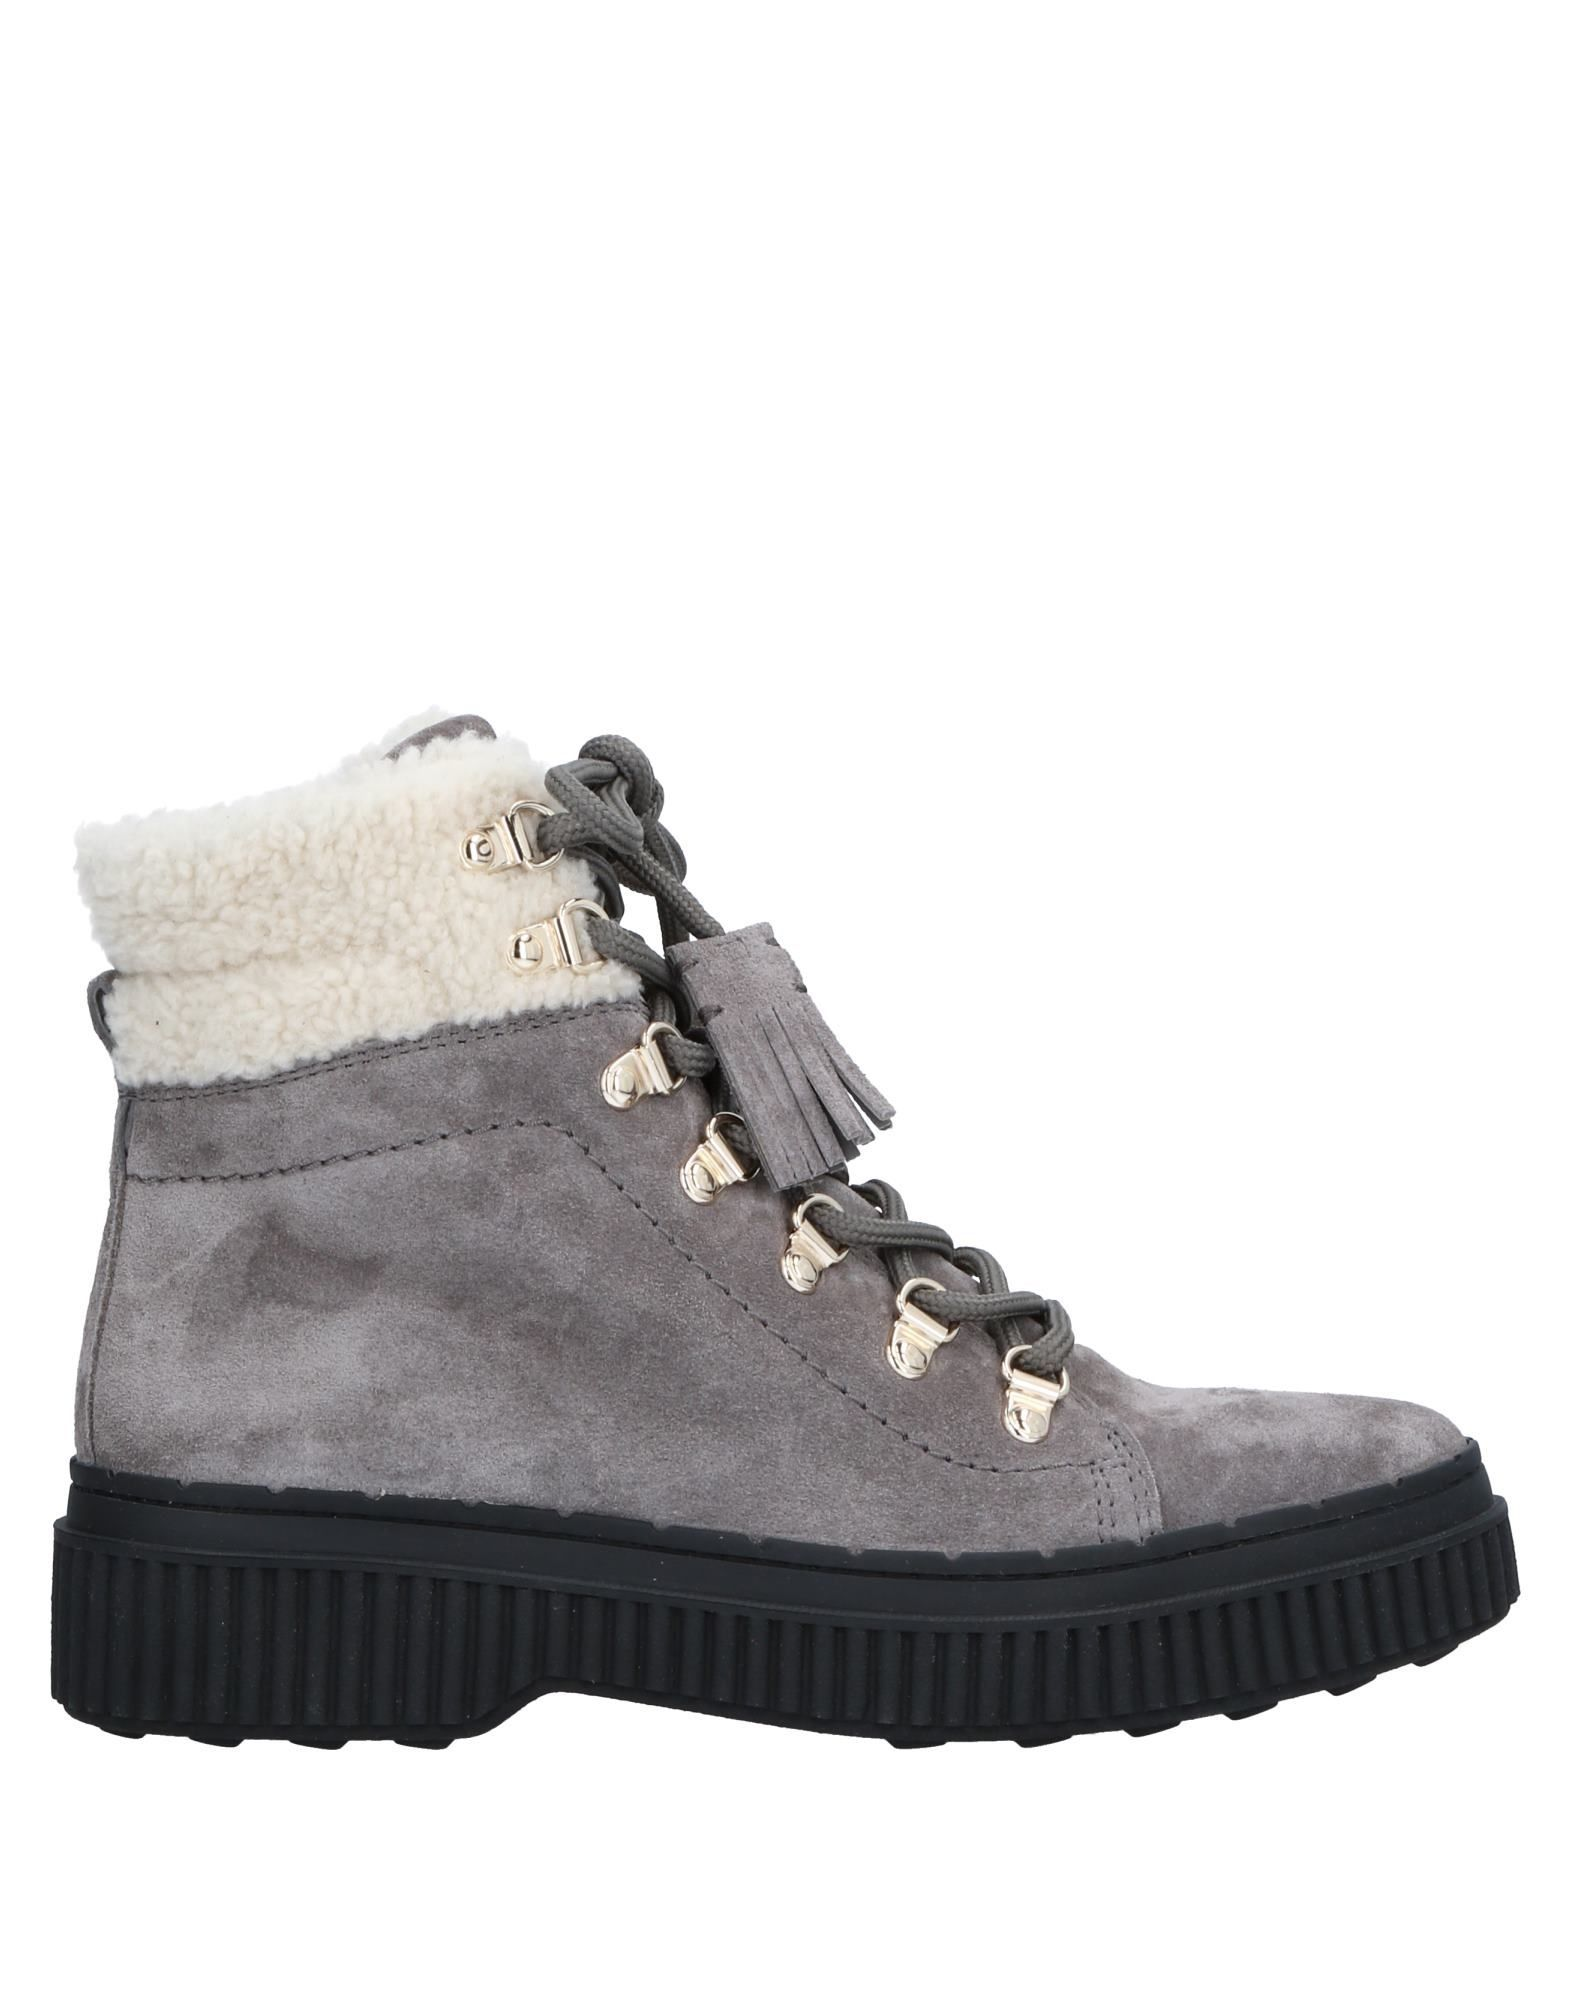 Tod's Grey Suede Lace Up Boots